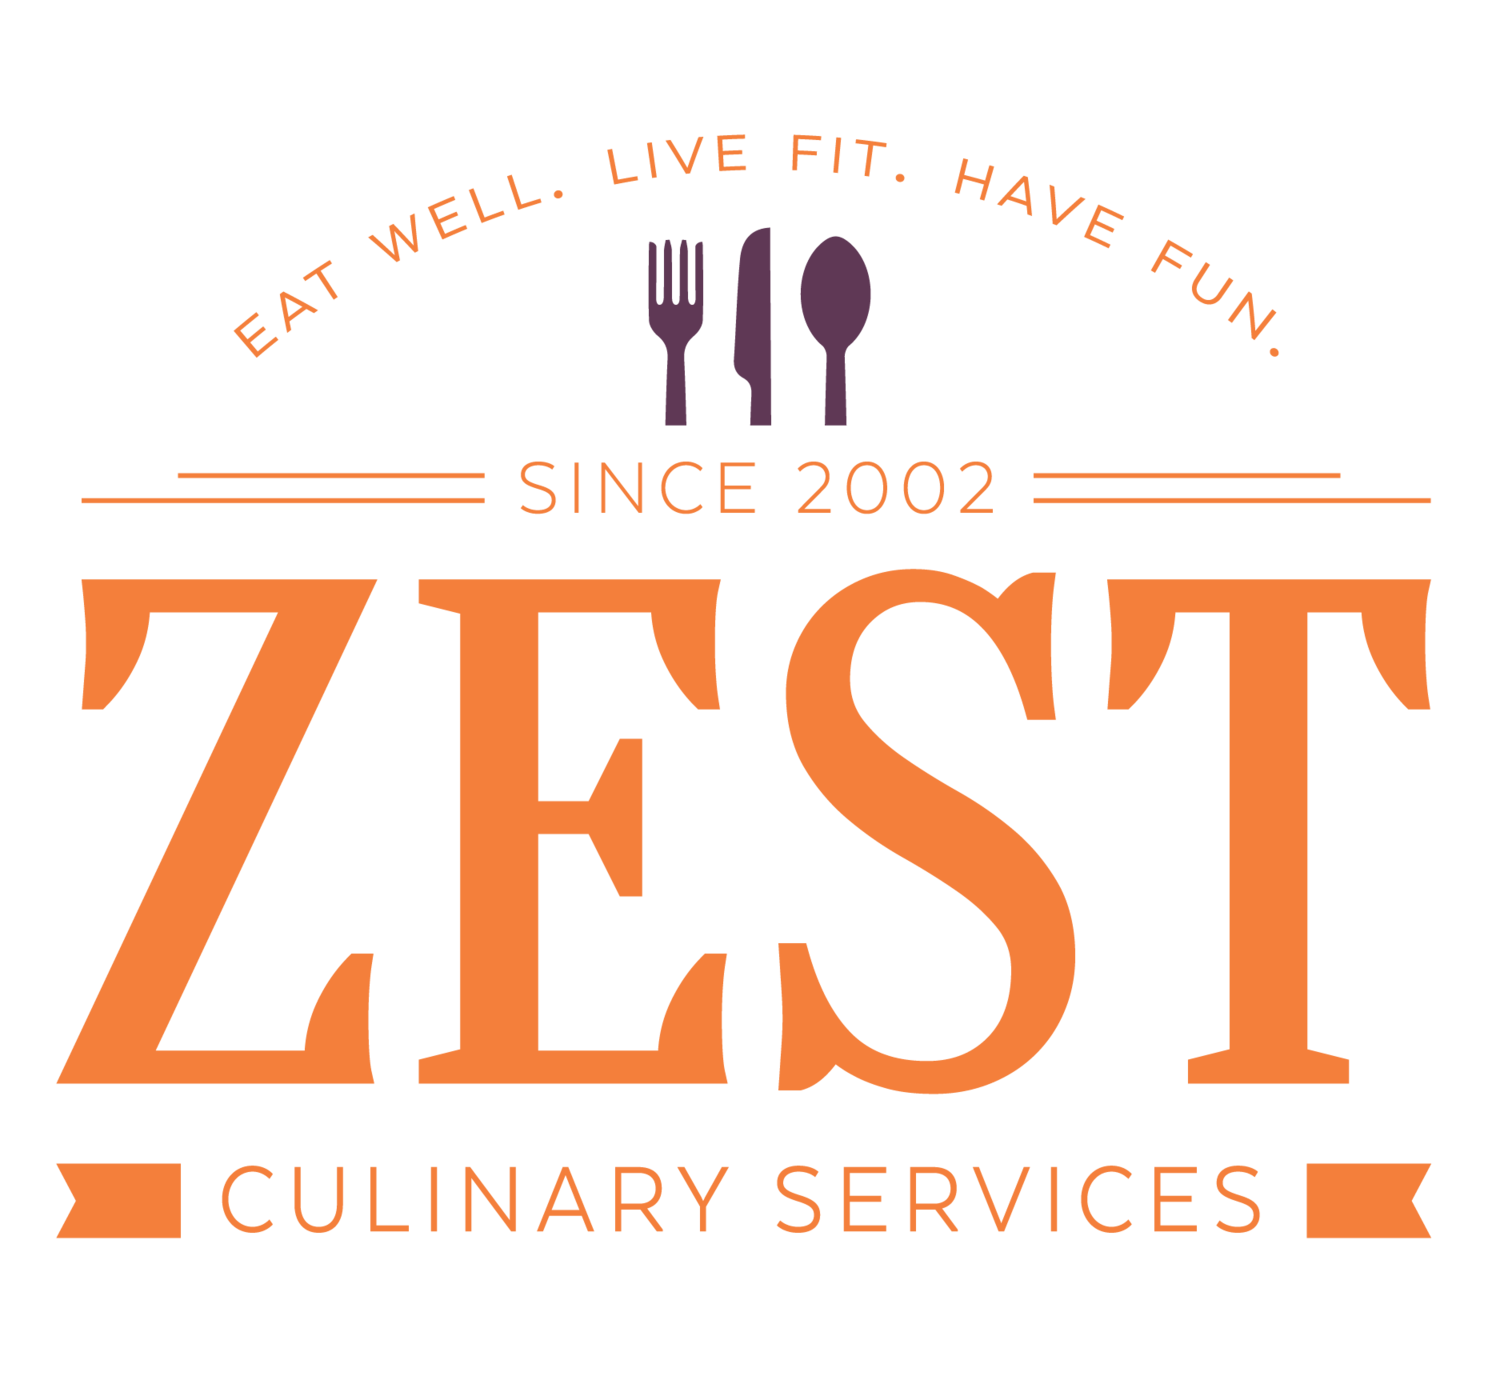 Zest Culinary Services